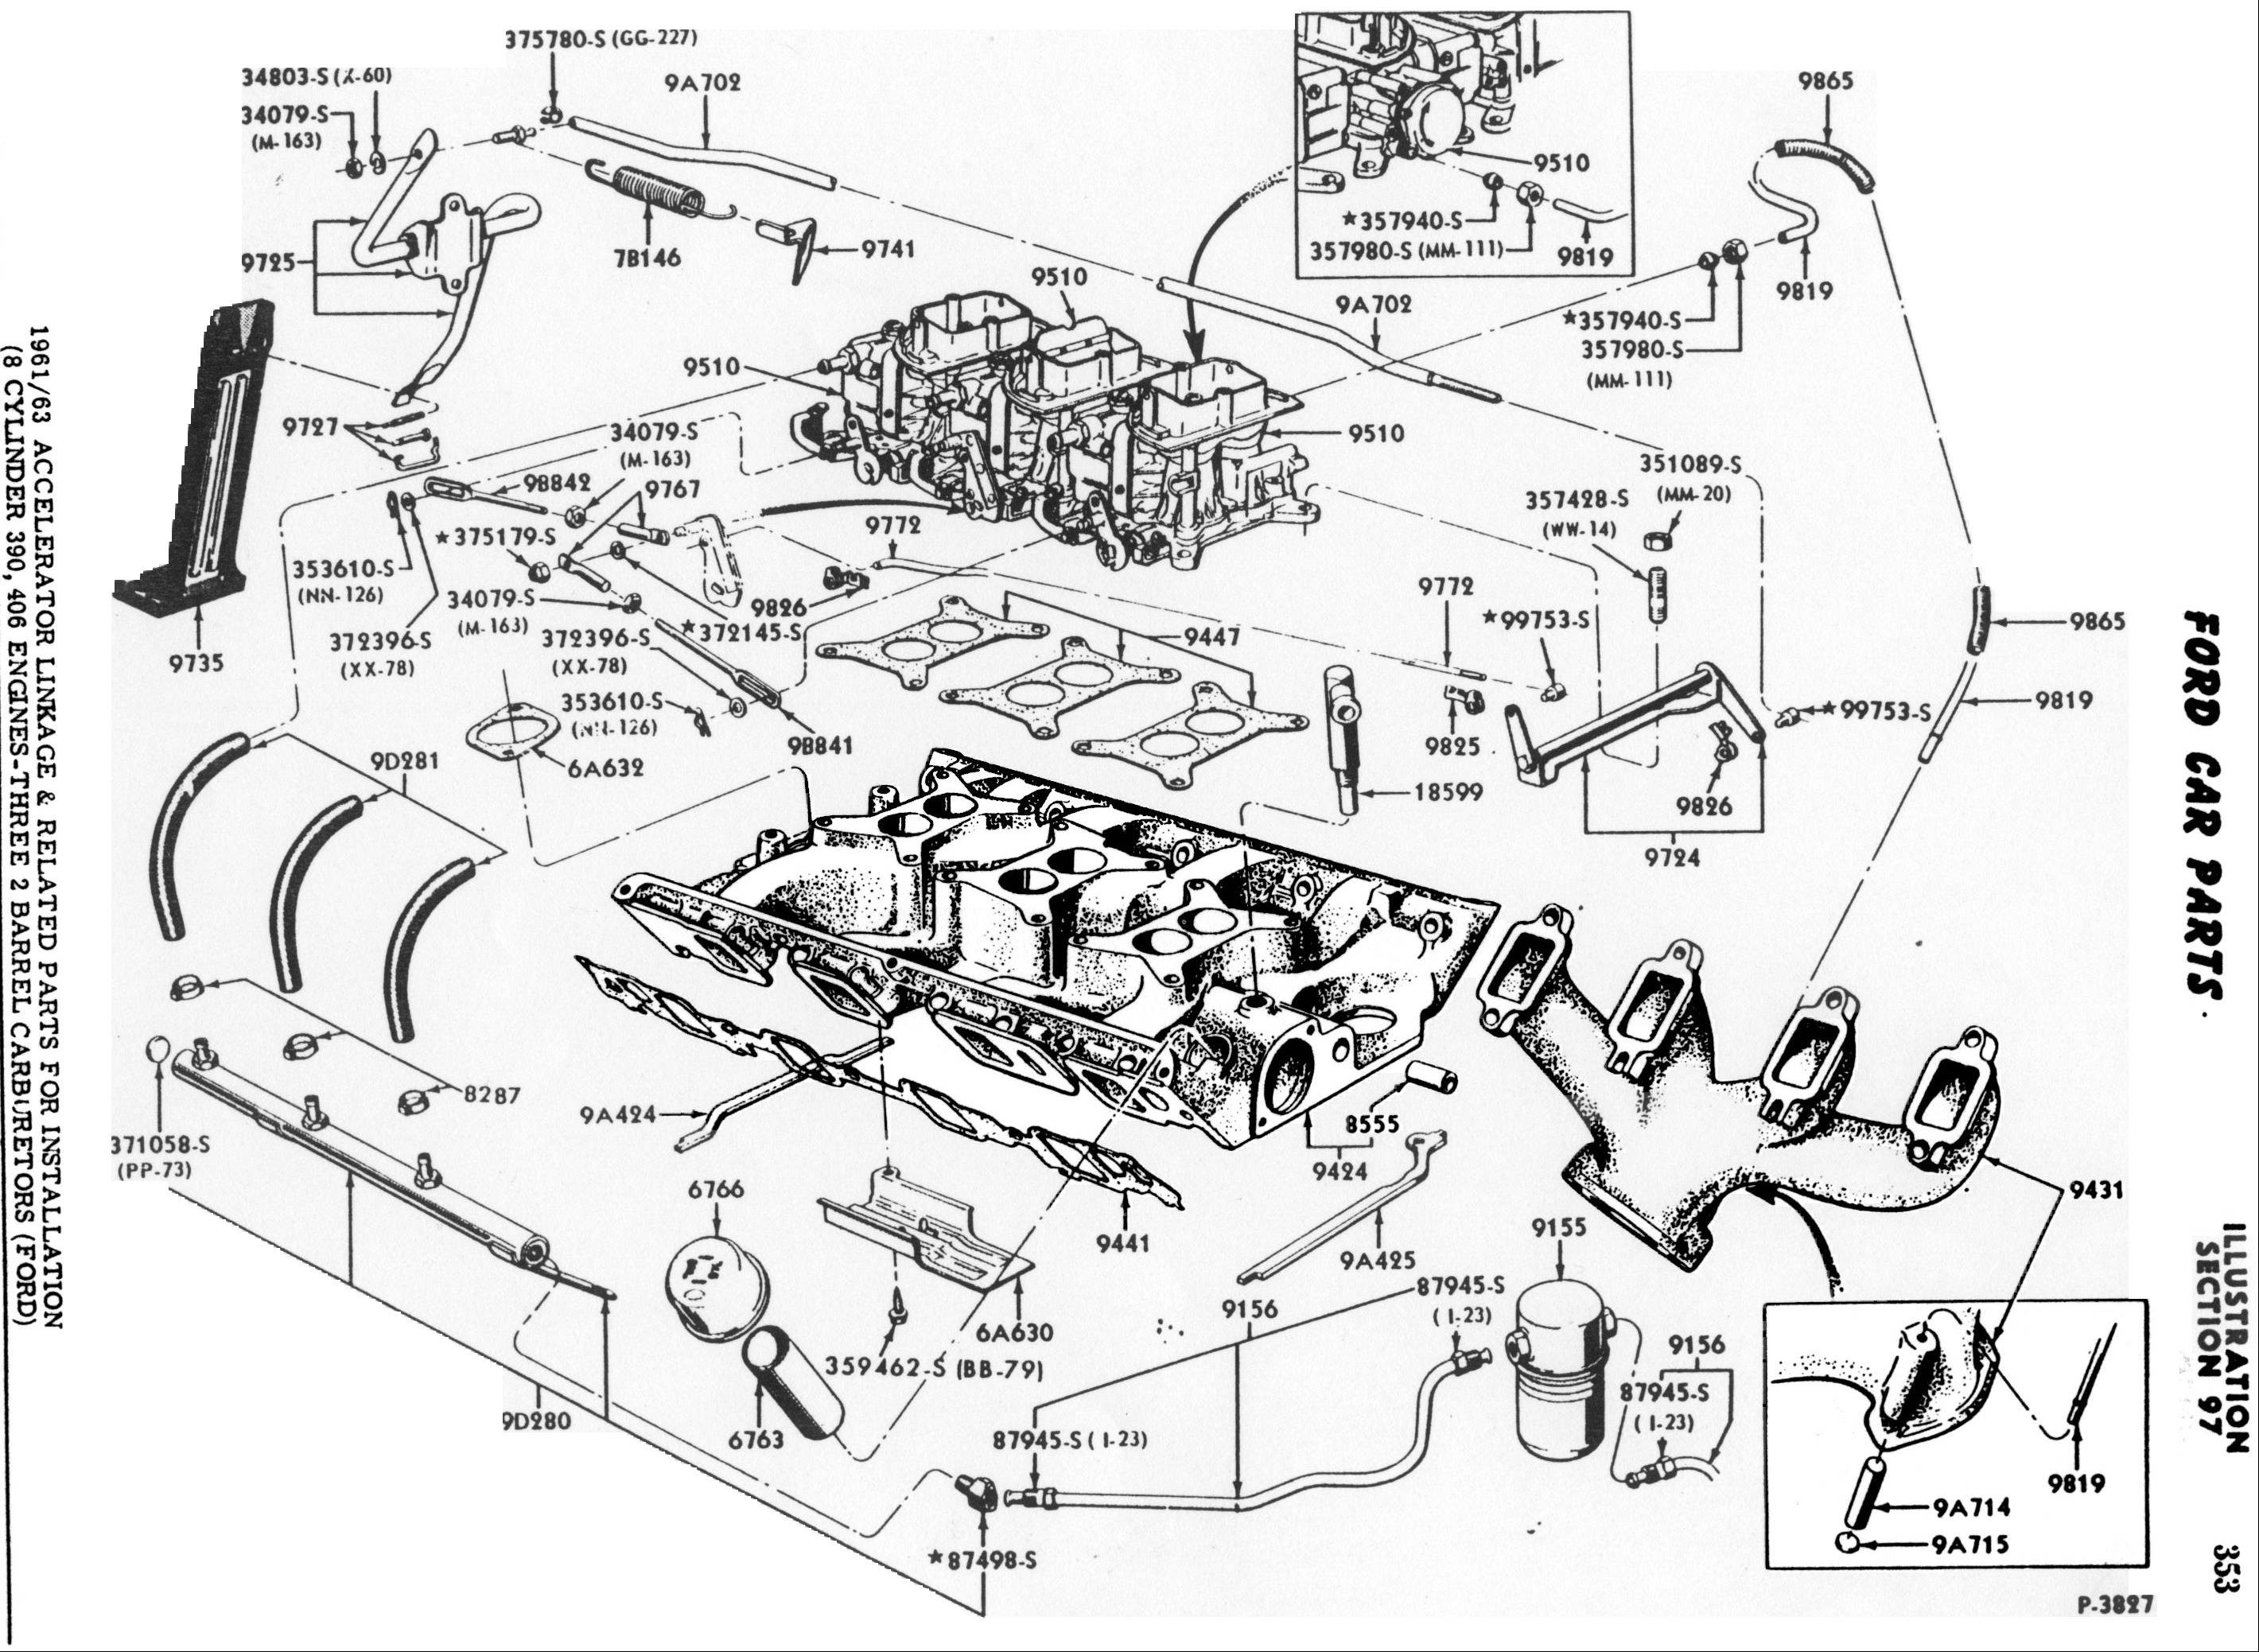 Hot Rod Engine Diagram Overhead Valve How To Build Your Own Sheetmetal 460 Ford Wiring Info Of